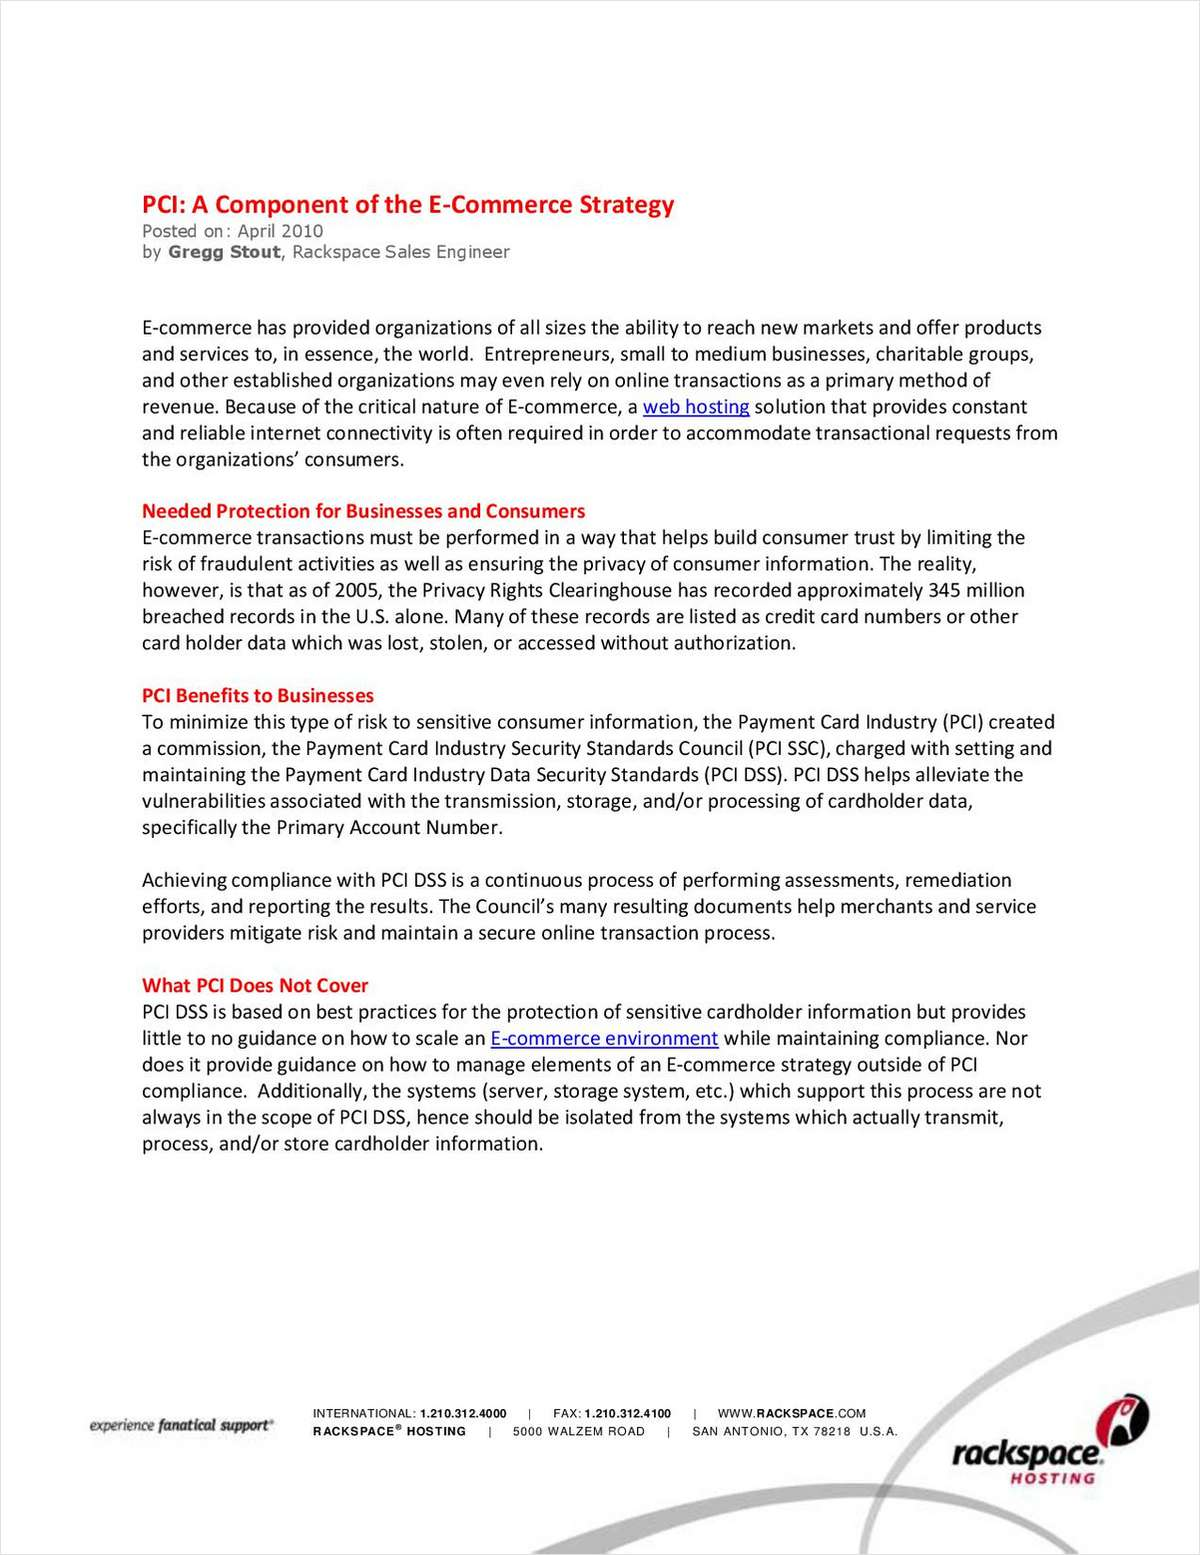 PCI: A Component of the E-Commerce Strategy